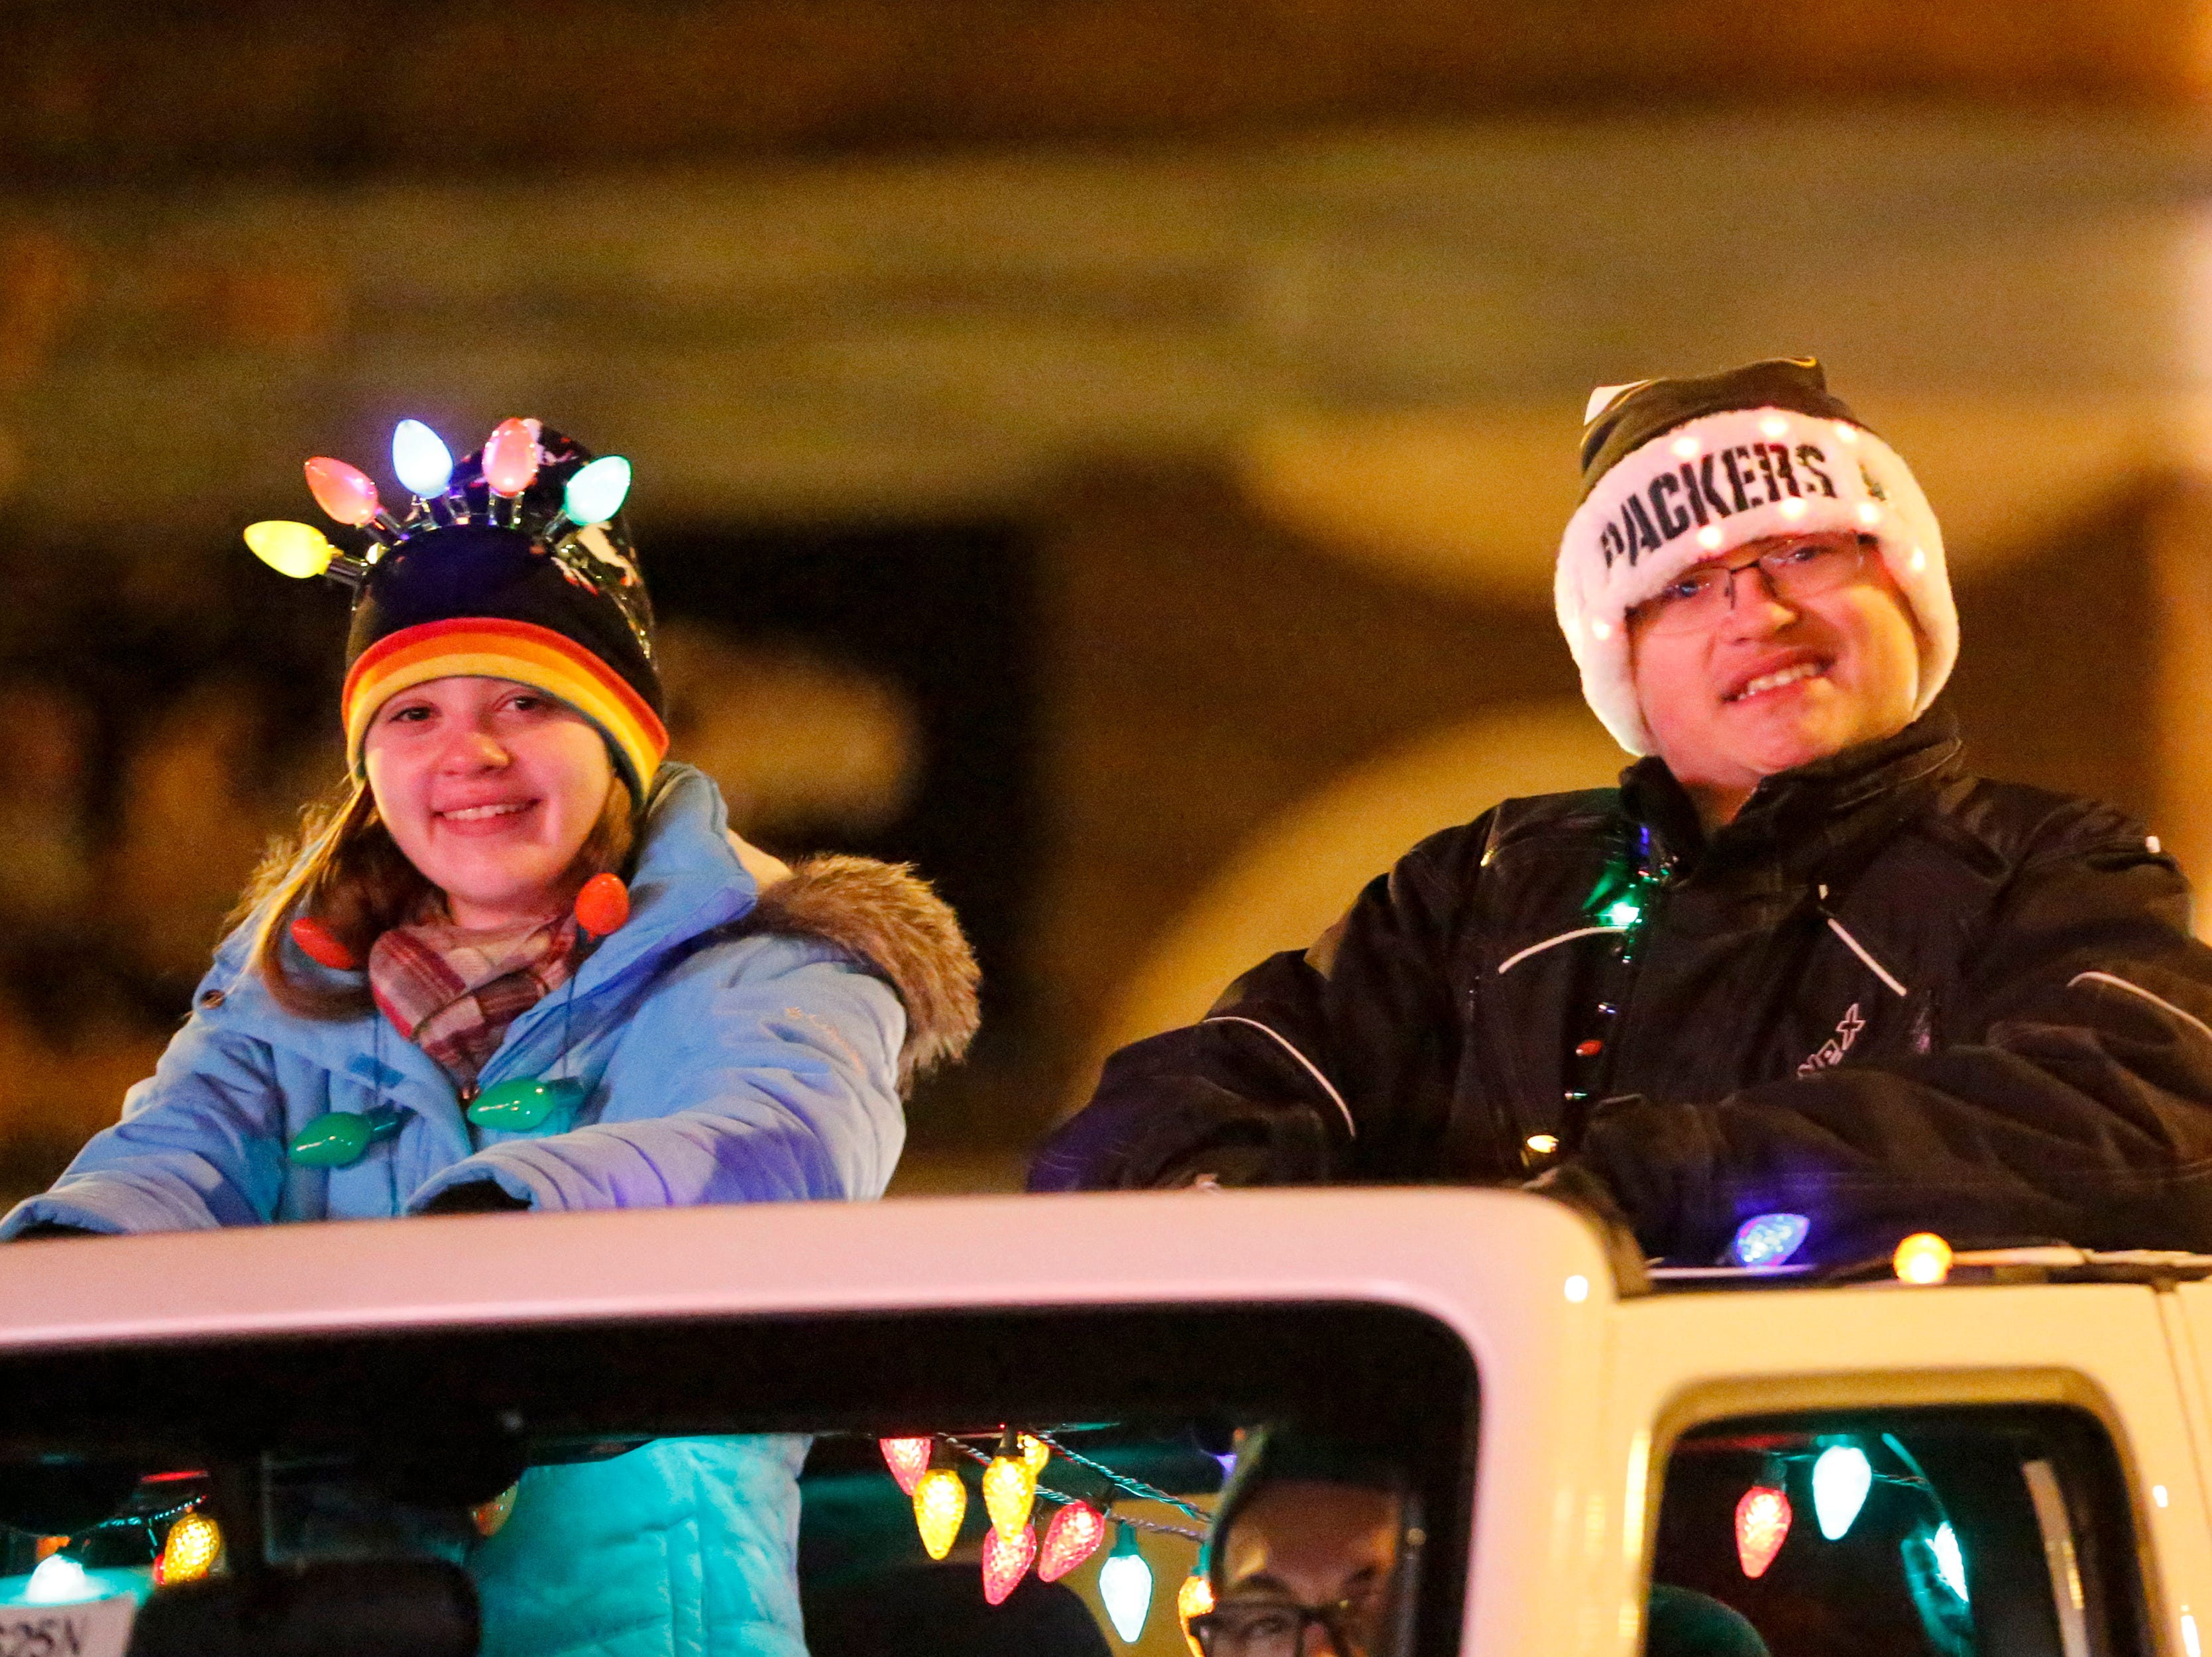 """Parade marshals lead the 30th Annual Lakeshore Holiday Parade Wednesday, November 21, 2018, in Manitowoc, Wis. This year's theme was """"Christmas Through the Decades."""" Joshua Clark/USA TODAY NETWORK-Wisconsin"""